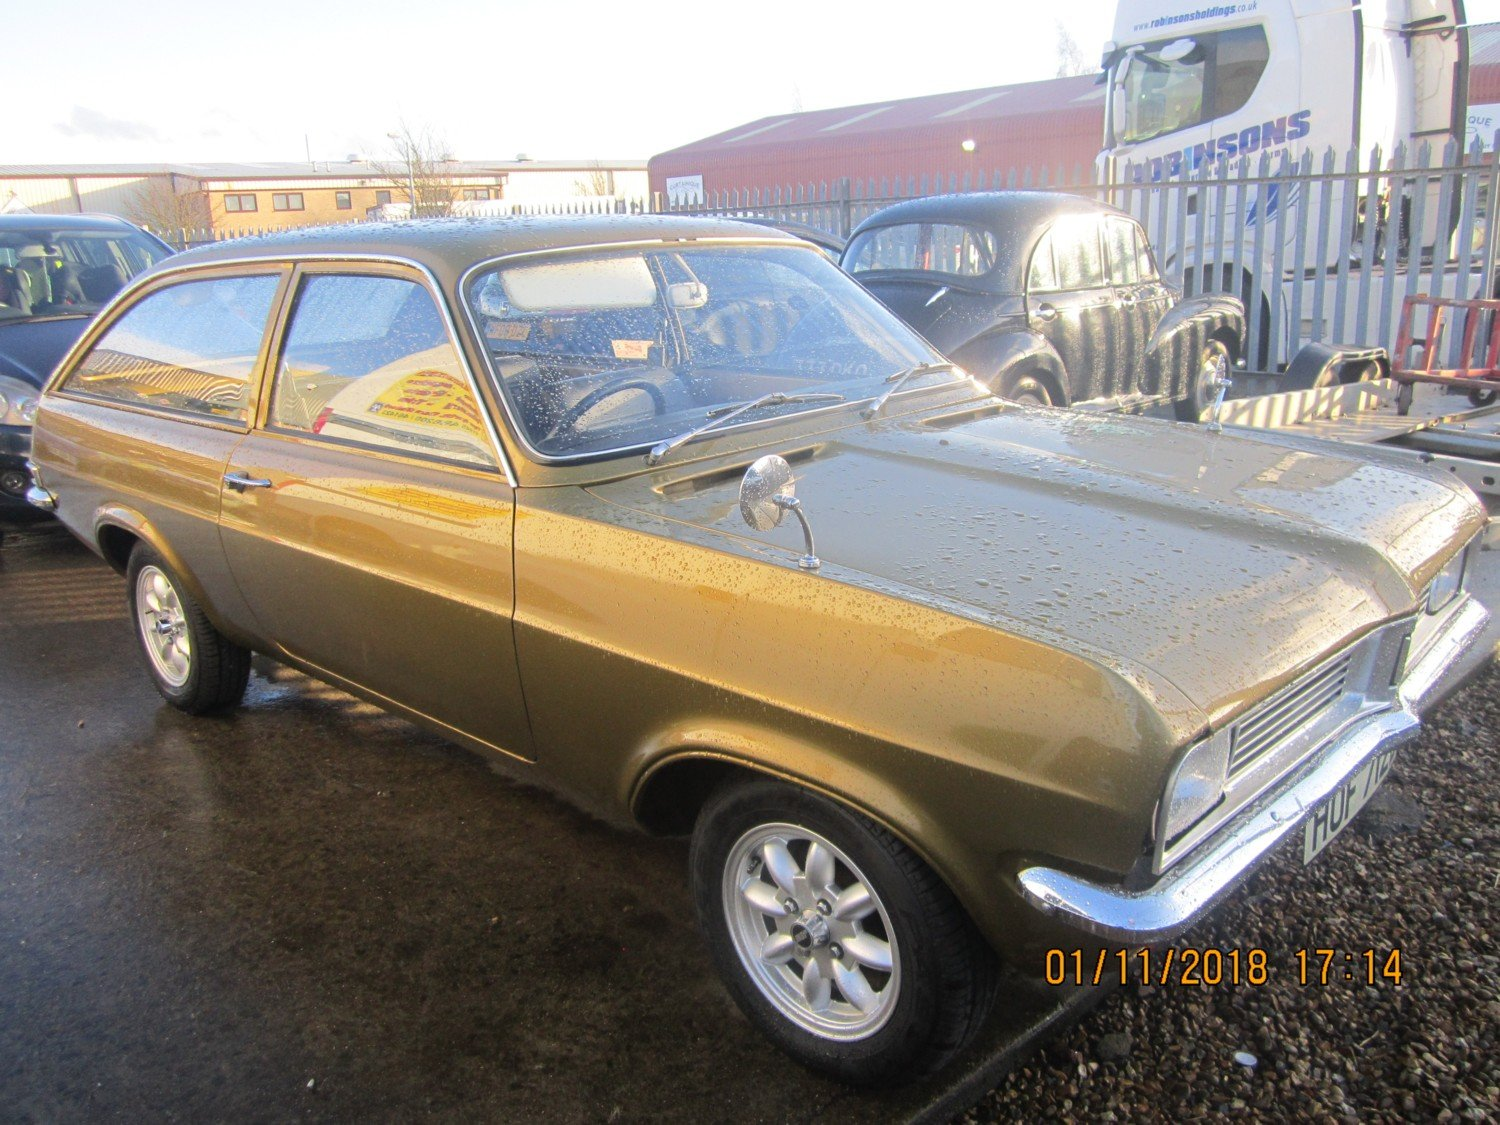 1973 Viva estate reduced For Sale (picture 1 of 6)